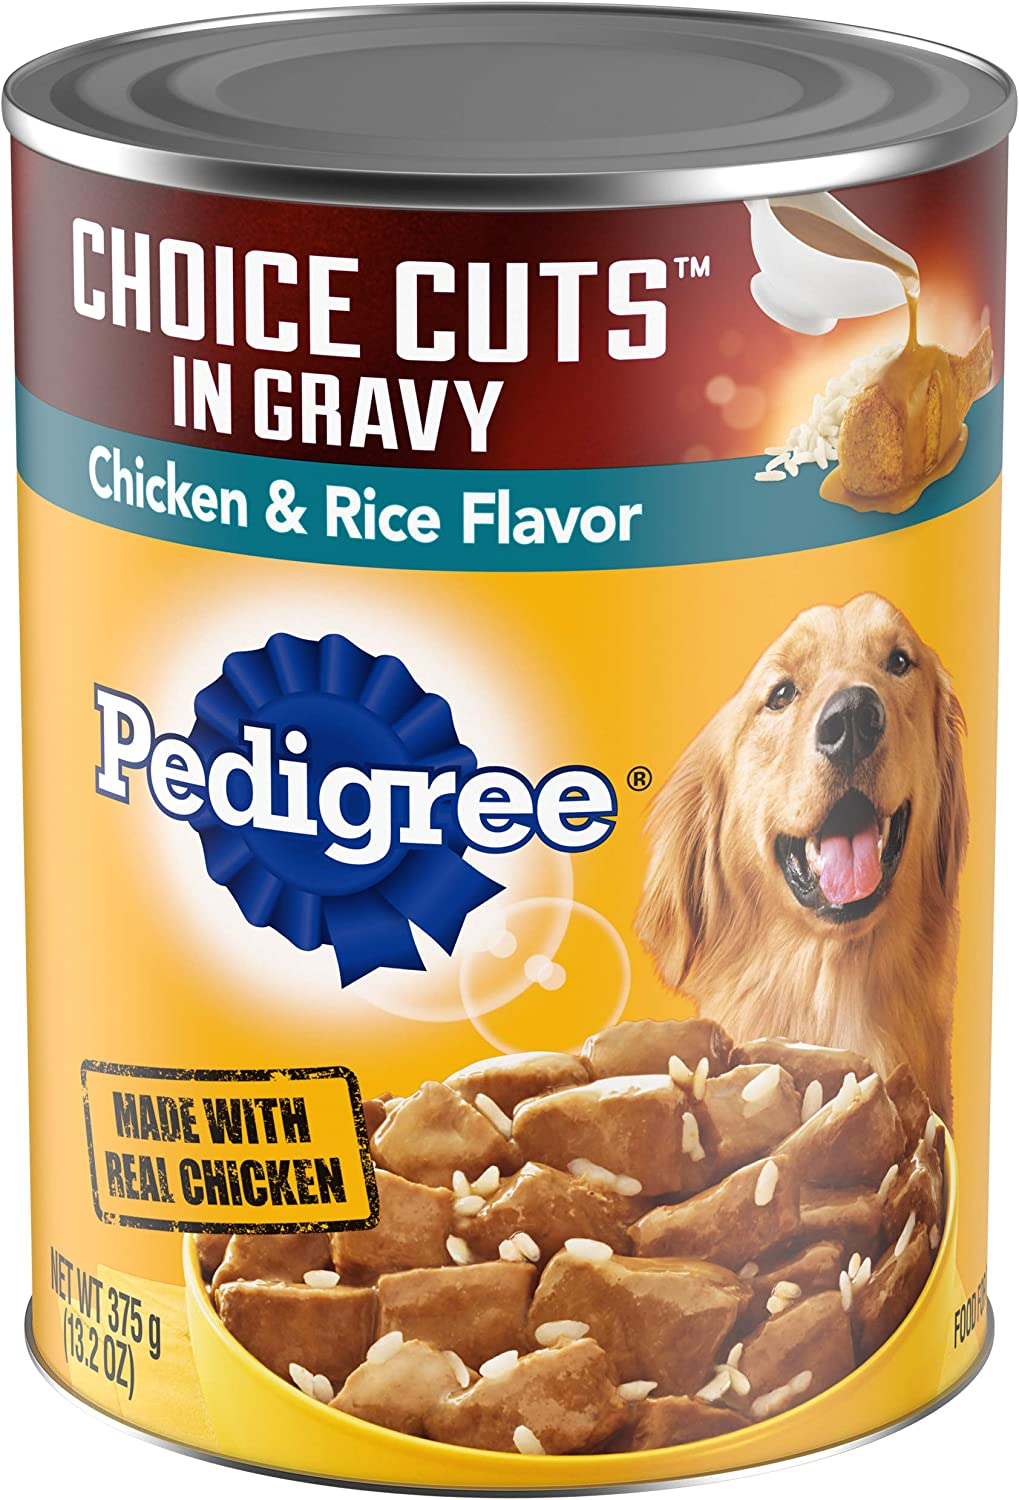 PEDIGREE CHOICE CUTS IN GRAVY Adult Canned Wet Dog Food, 13.2 oz. (Pack of 12)